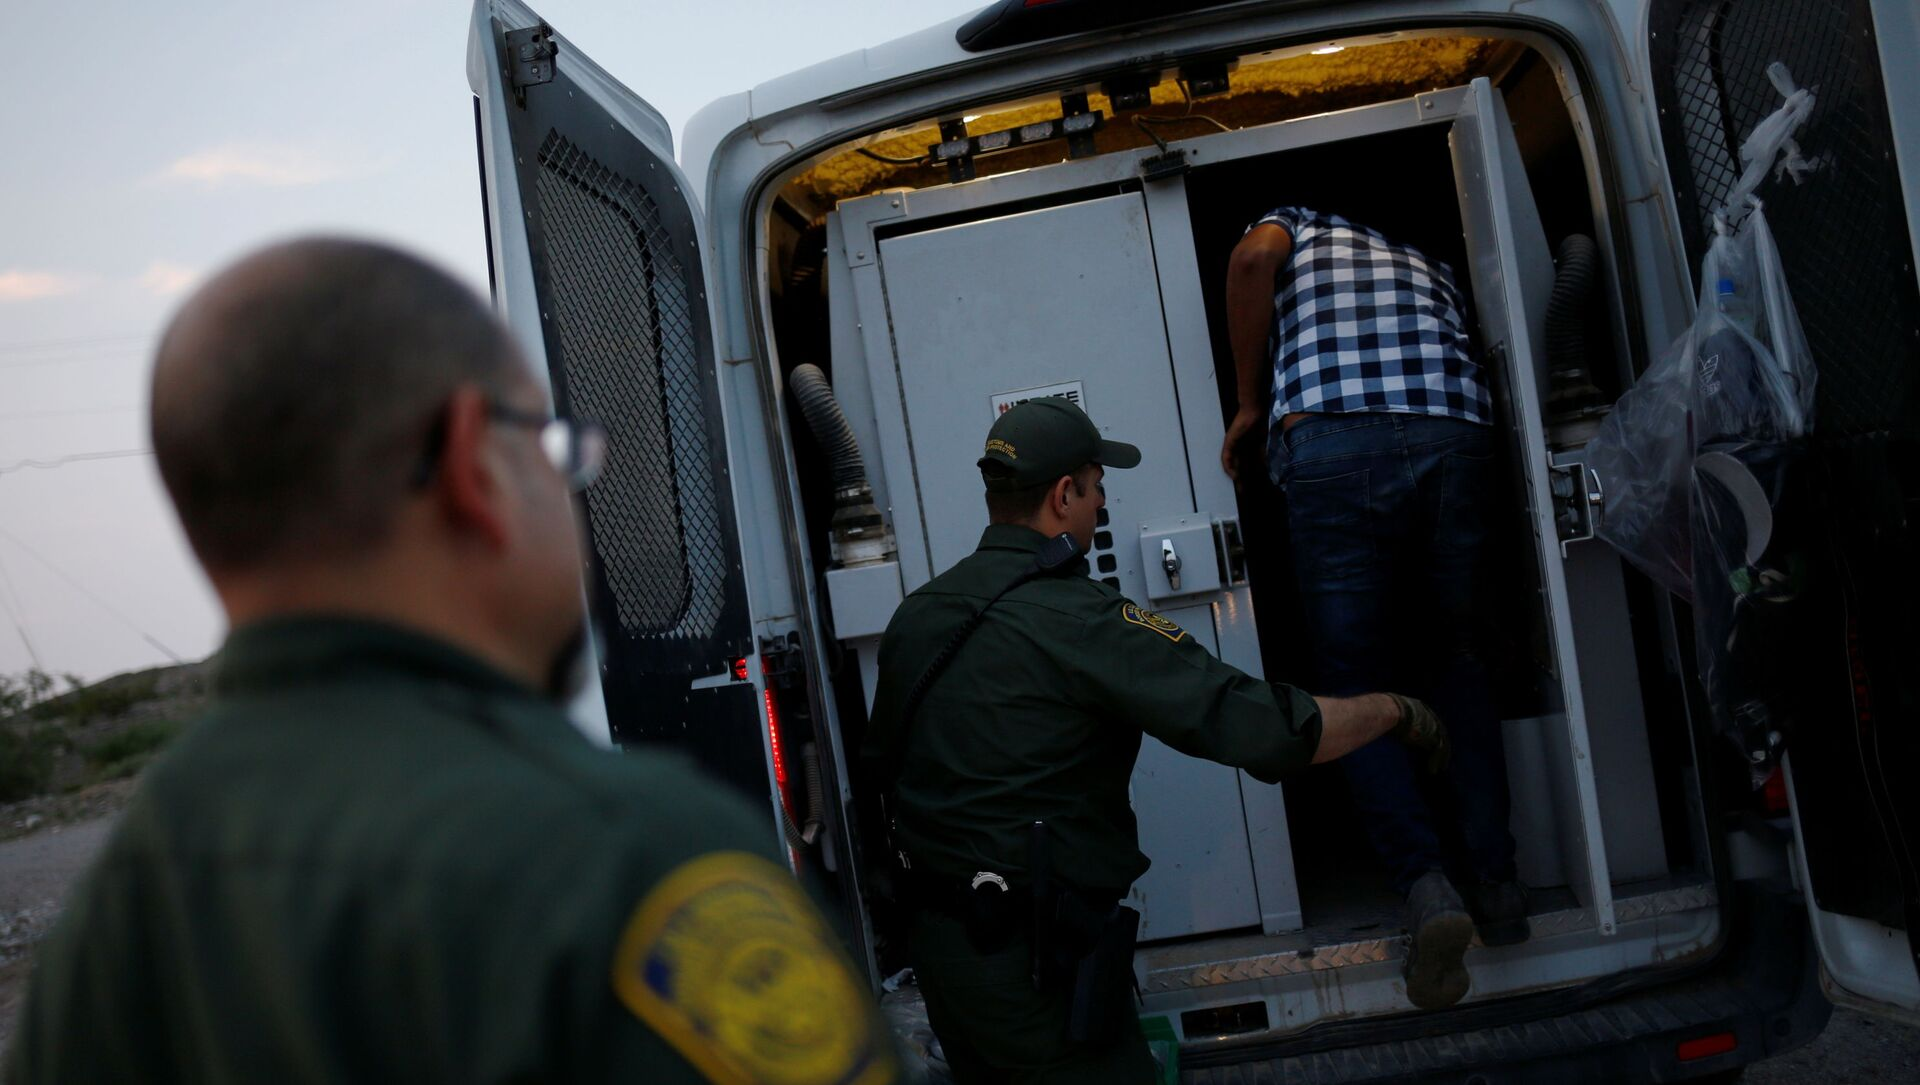 A migrant from Central America is detained by U.S. Border Patrol agents after crossing into the United States from Mexico, in Sunland Park, New Mexico, U.S., July 22, 2021 - Sputnik International, 1920, 29.07.2021